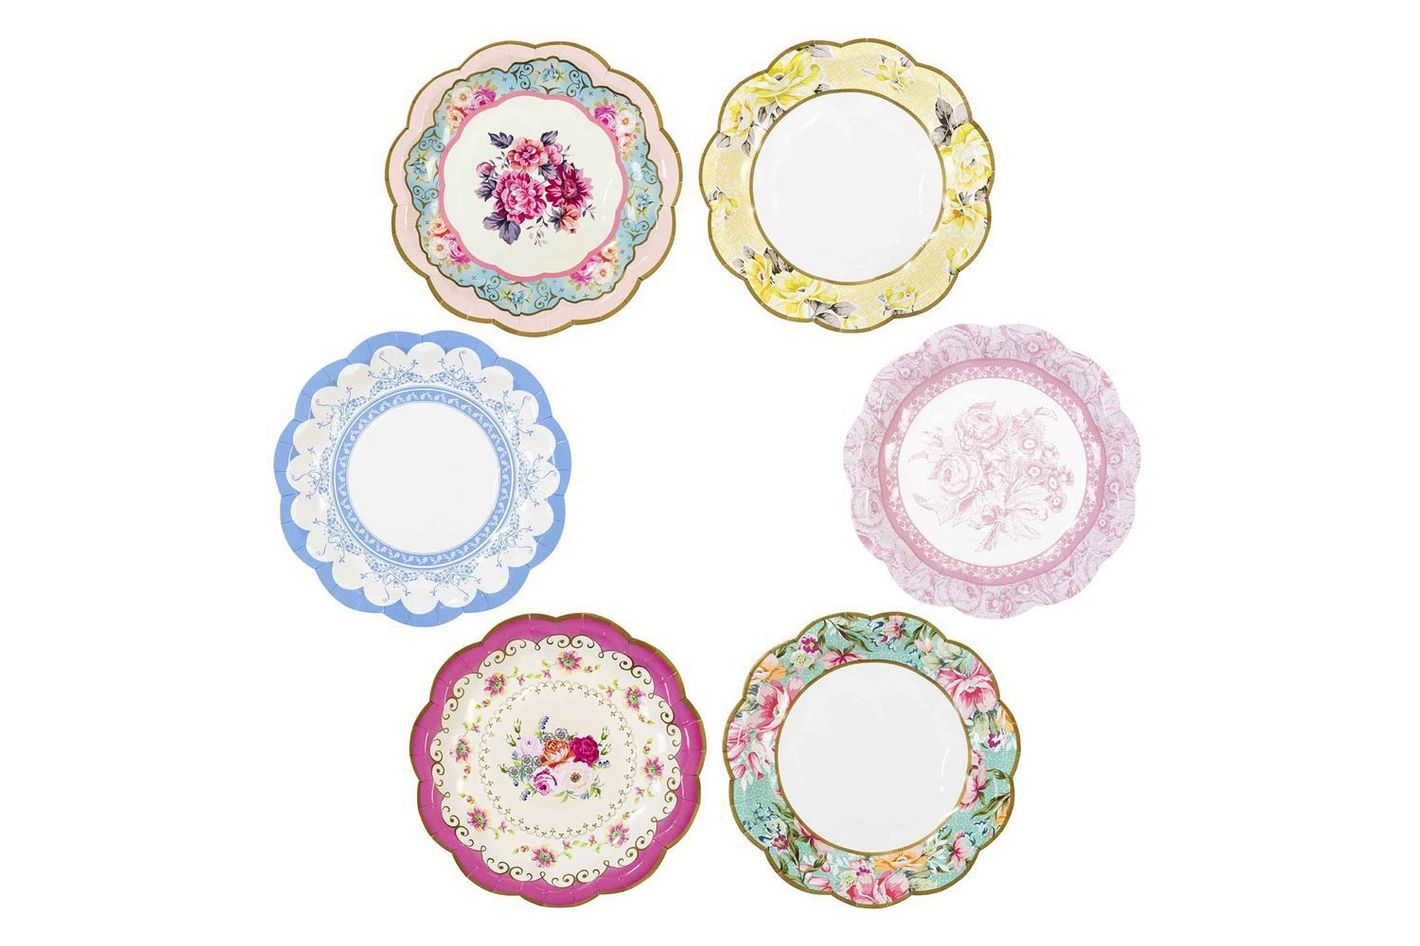 Talking Tables Truly Scrumptious Vintage Floral Small Paper Plates, 12-Count, 6.75 Inches